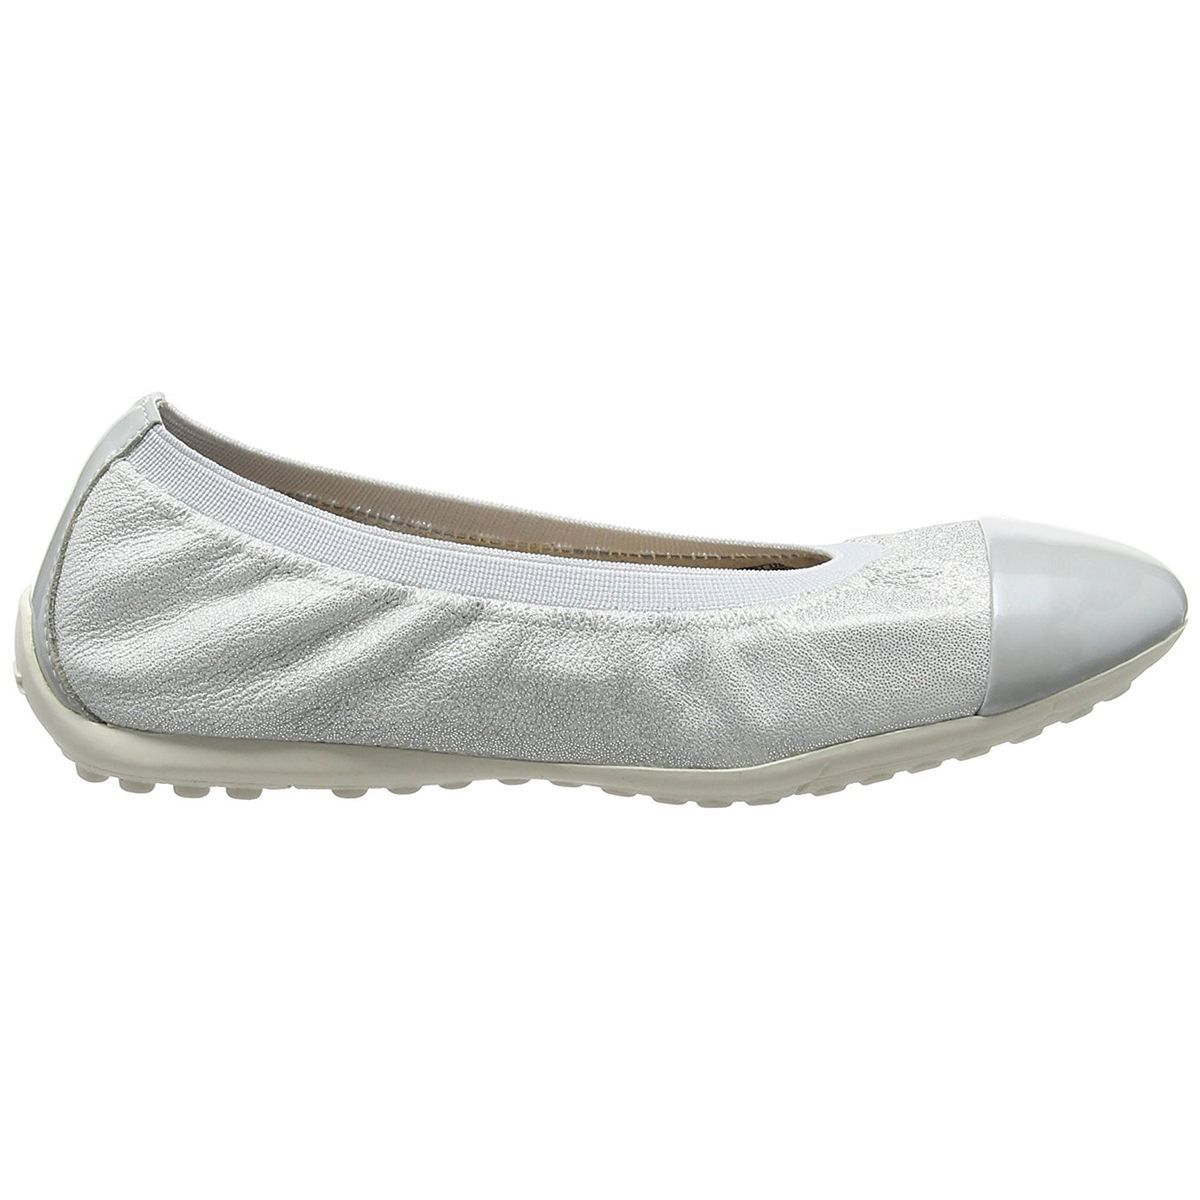 STONE 1 W PIUMA BALLERINE:GRIS/CUIR + SYNTHETIQUE/CUIR + SYNTHETIQUE/SYNTHETIQUE/Pearl